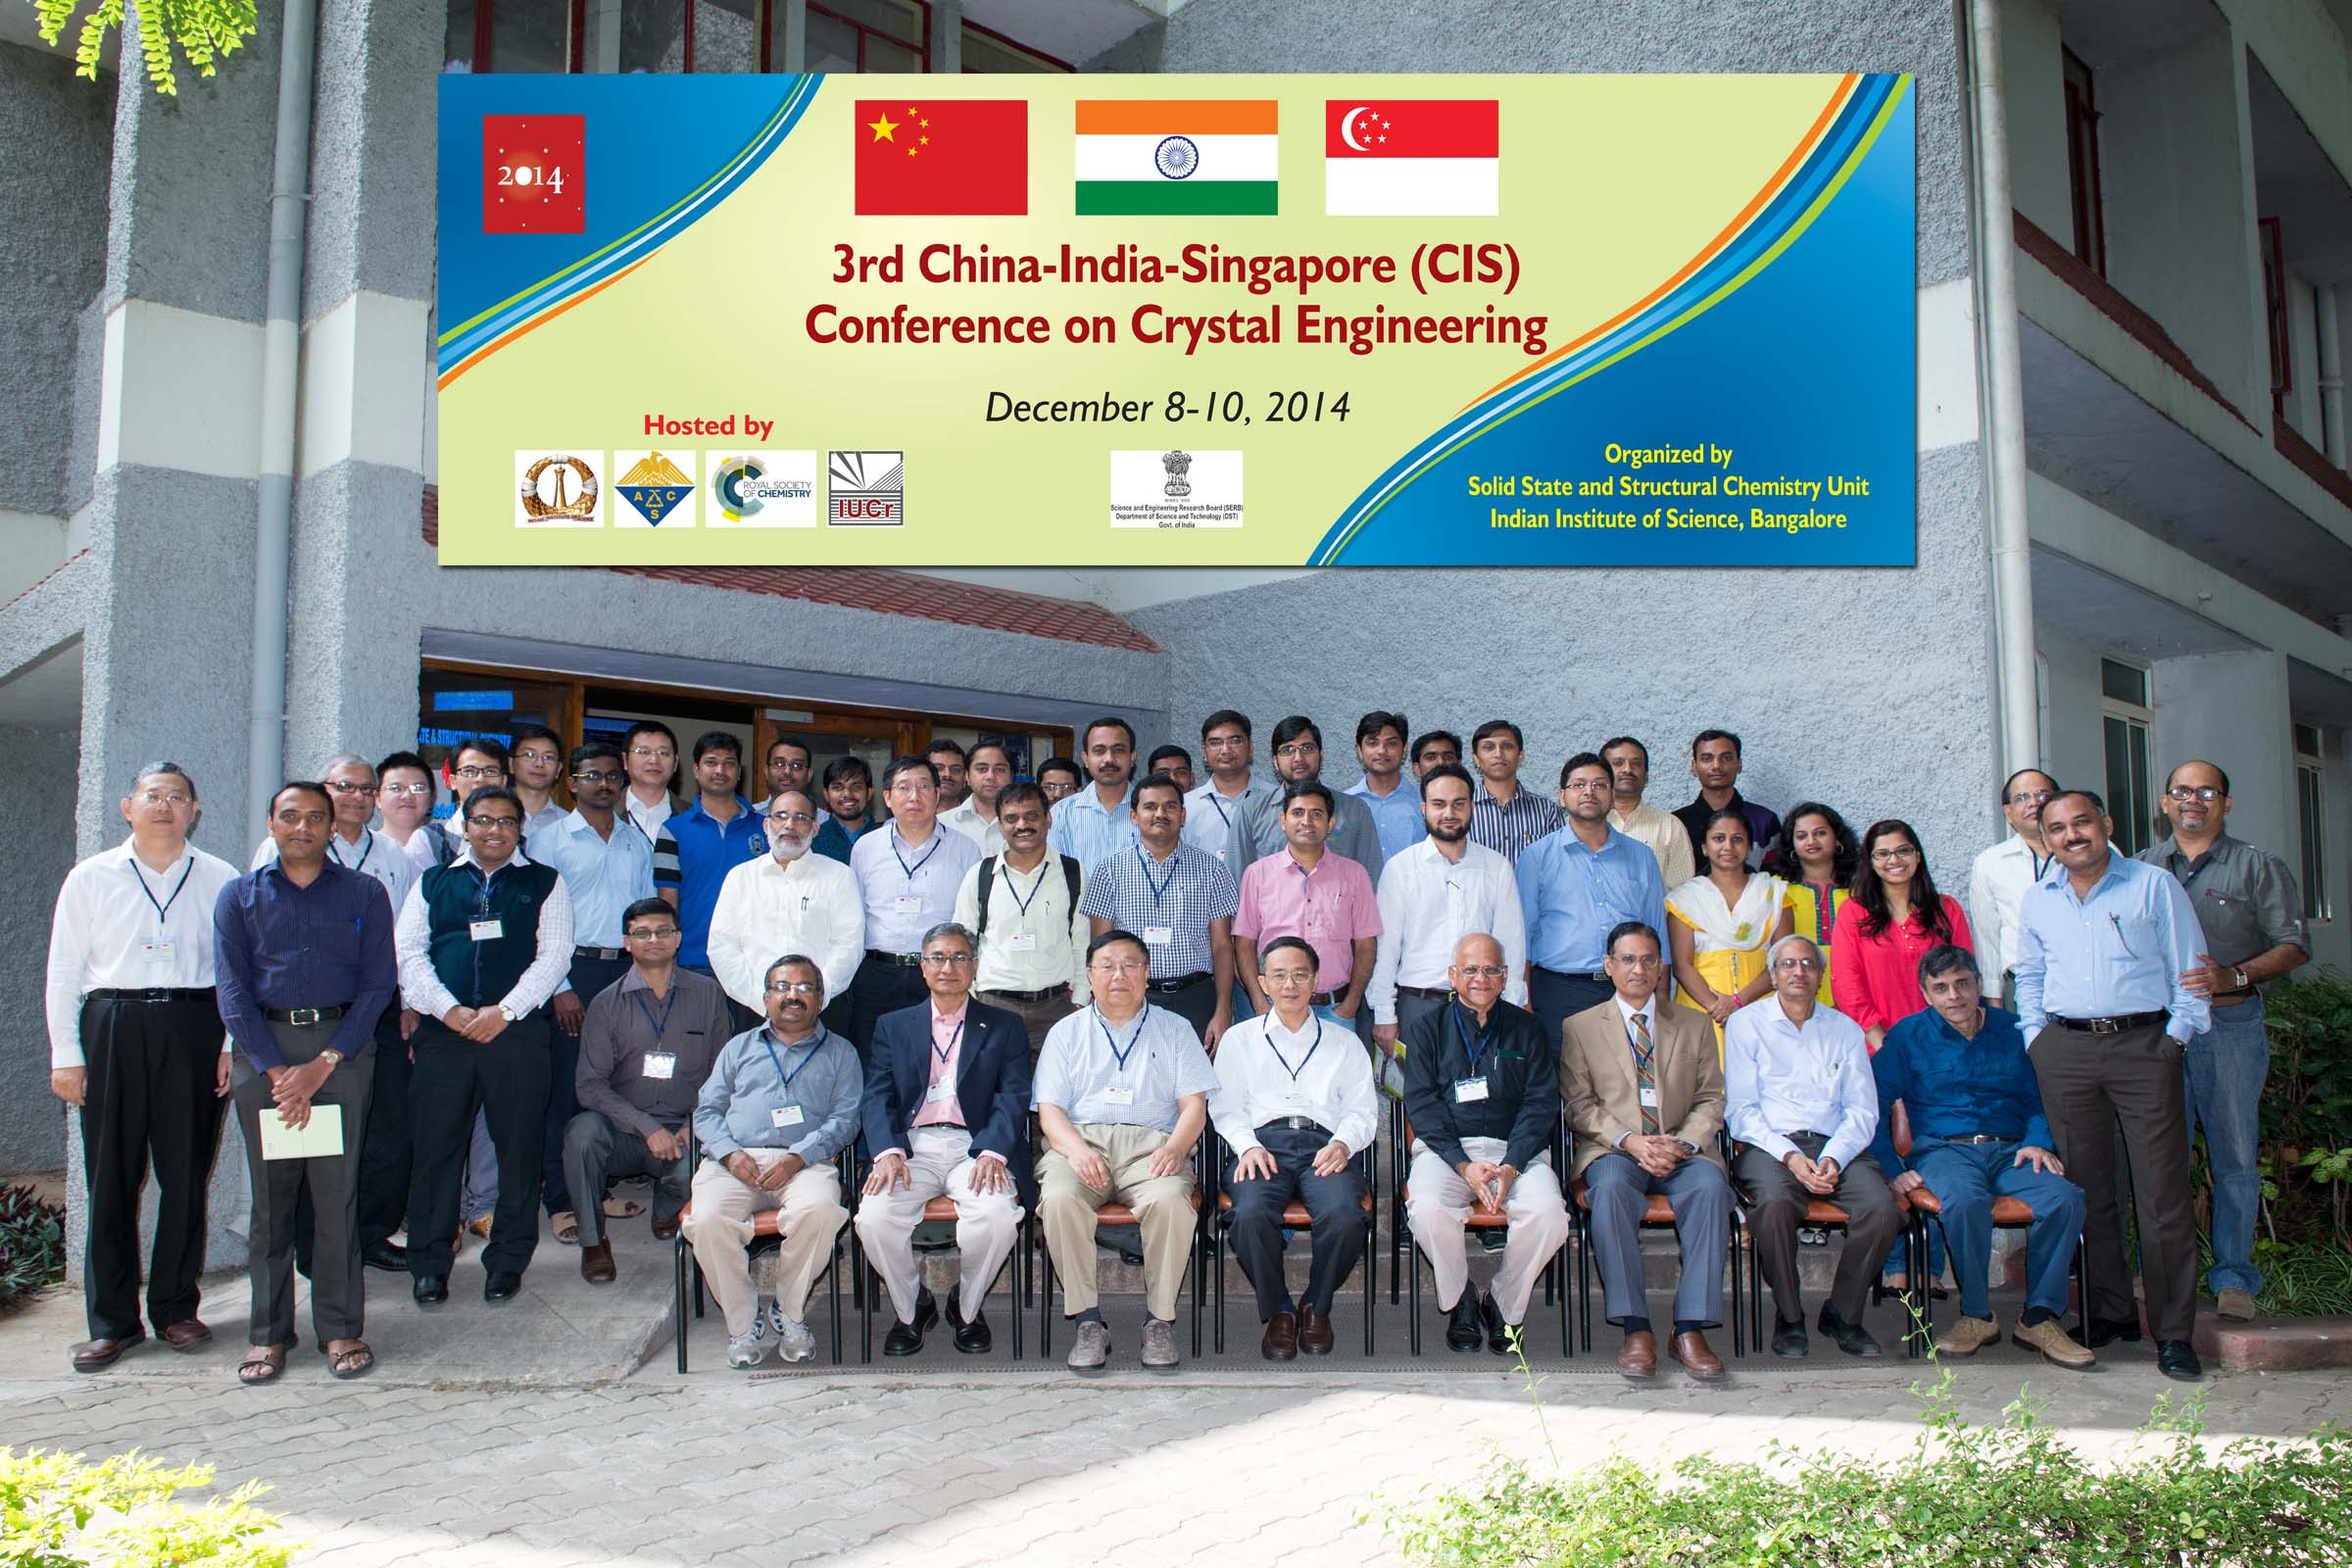 3rd China-India-Singapore (CIS) Symposium on Crystal Engineering